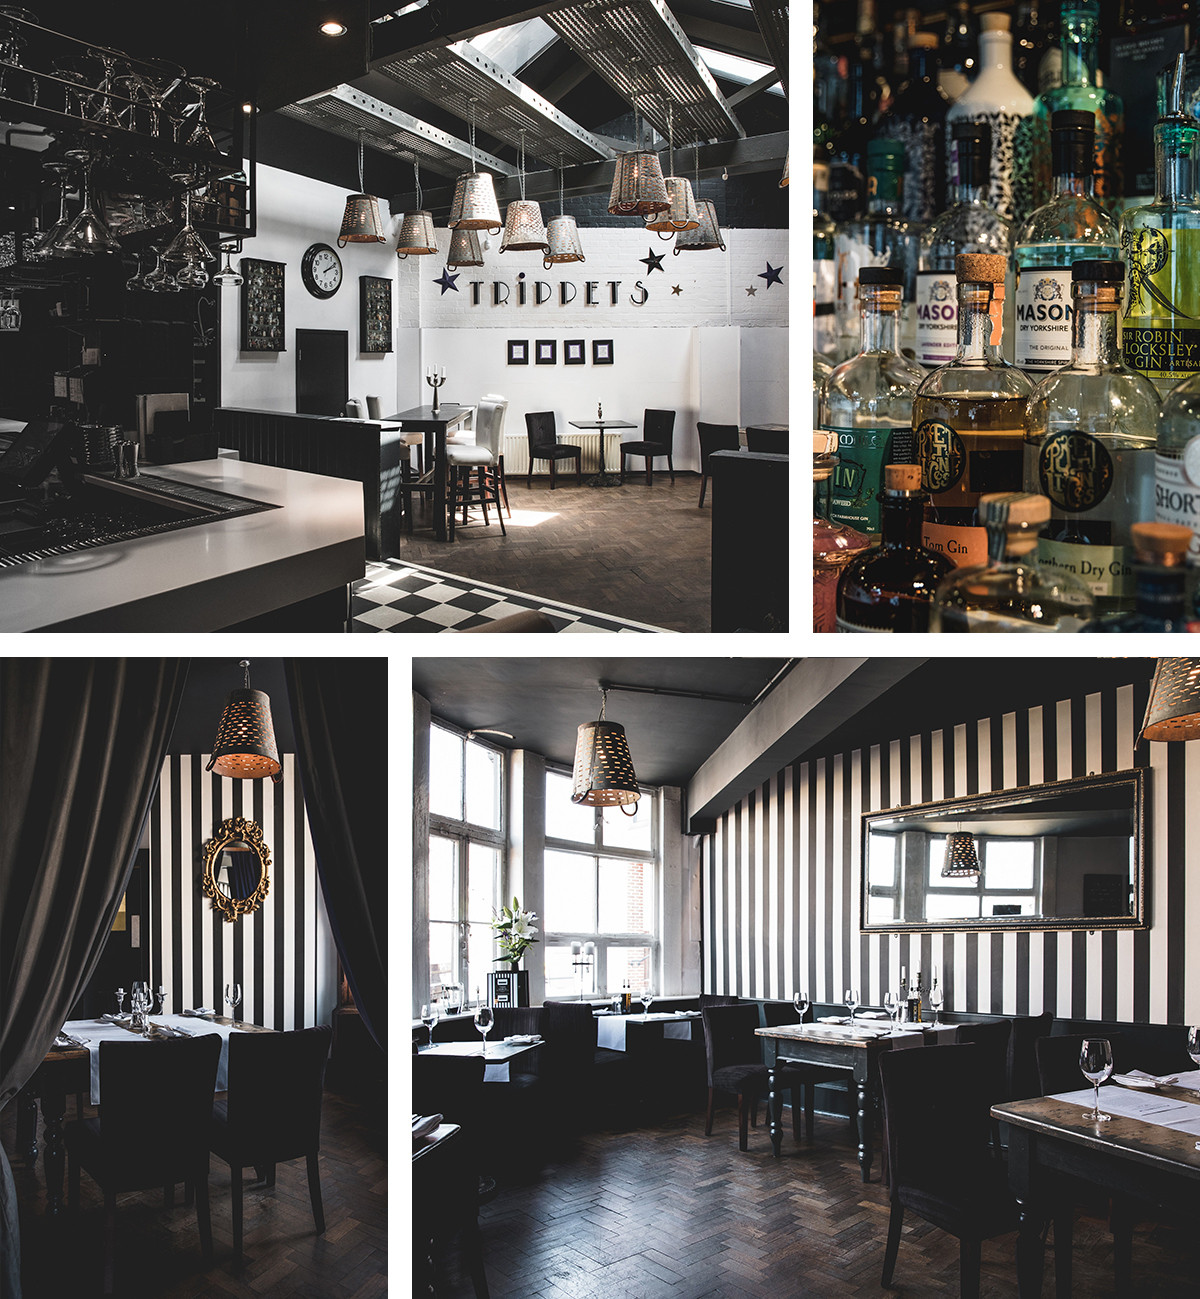 Trippets-Lounge-Bar-Sheffield-Images by Max Hawley.jpg